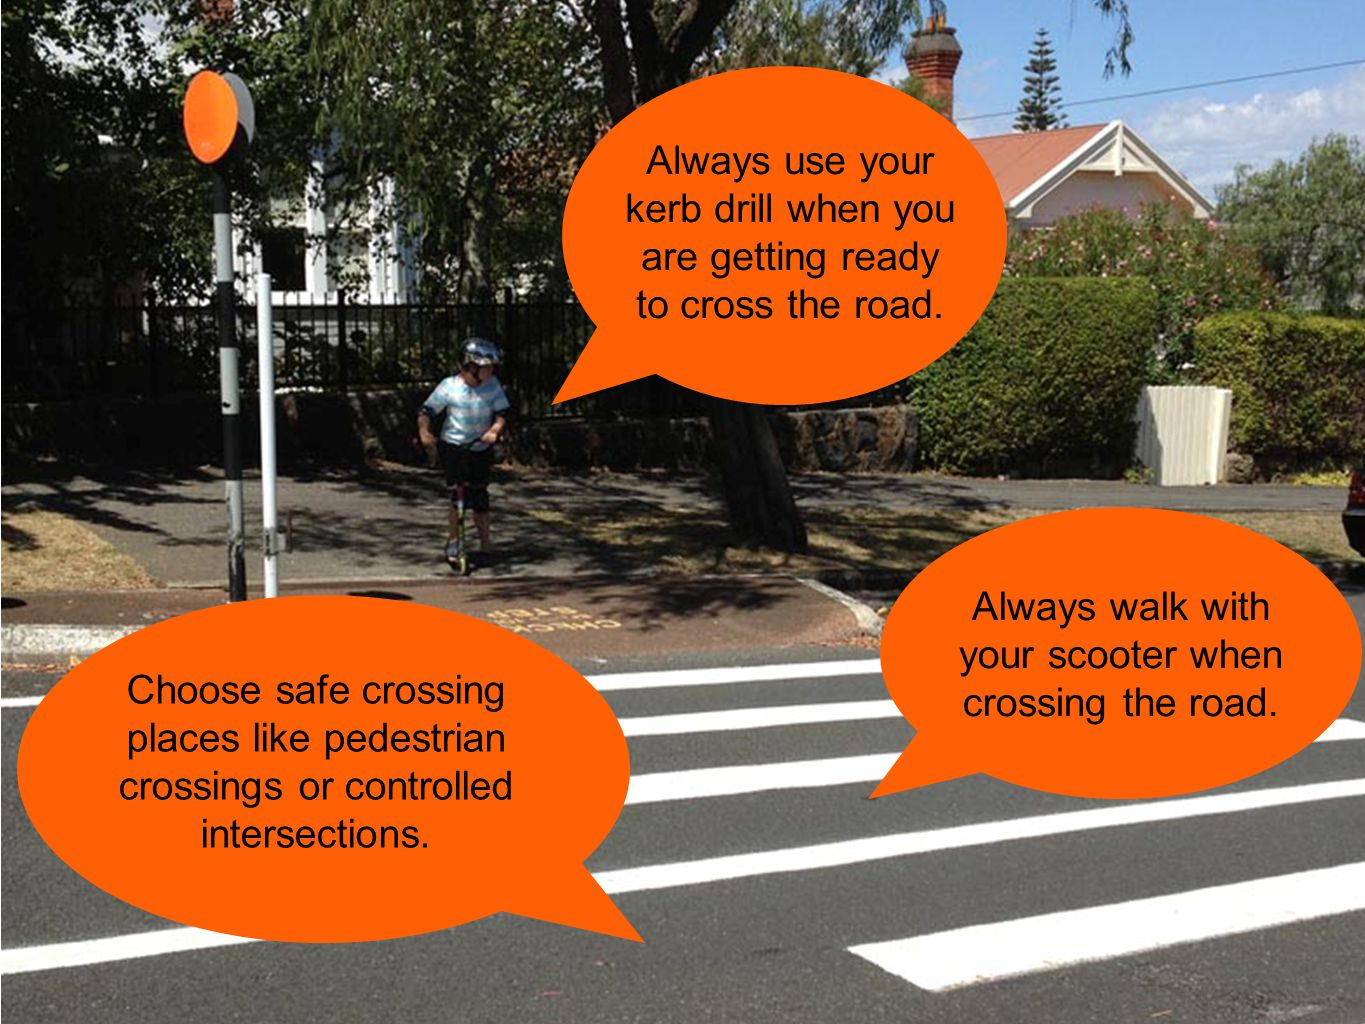 Always use your kerb drill when you are getting ready to cross the road.